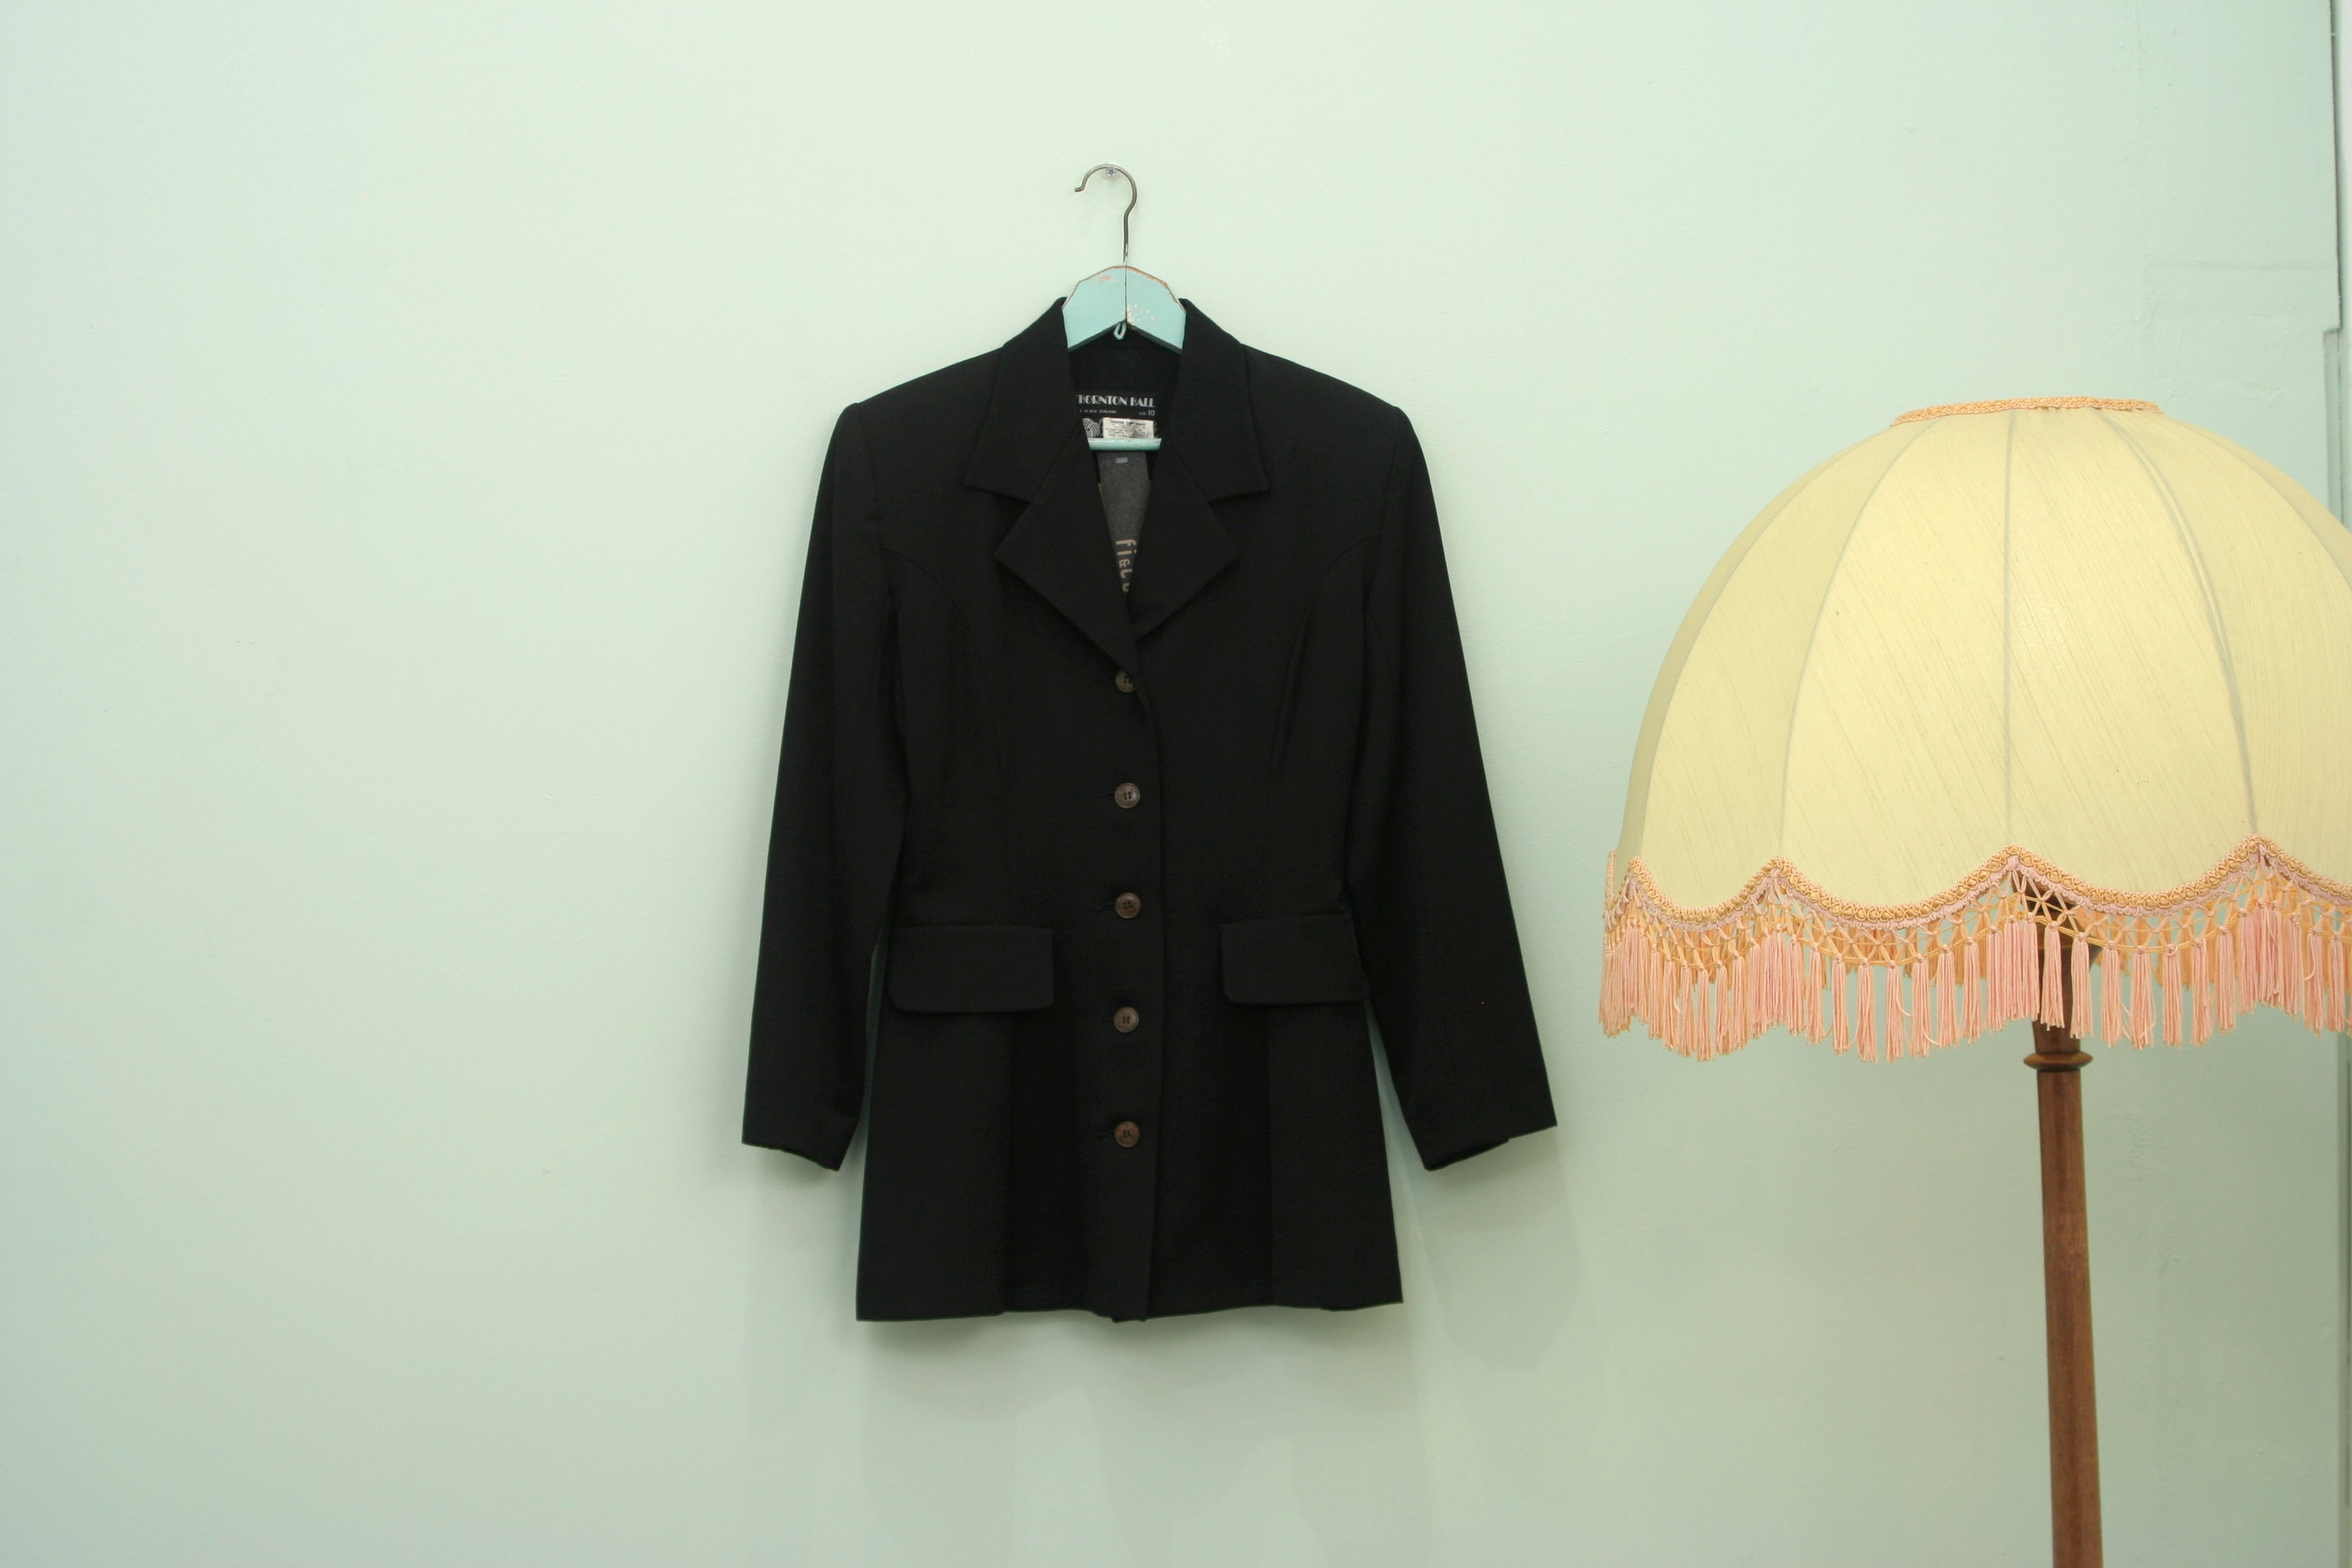 Vintage 80s Thornton Hall Riding jacket